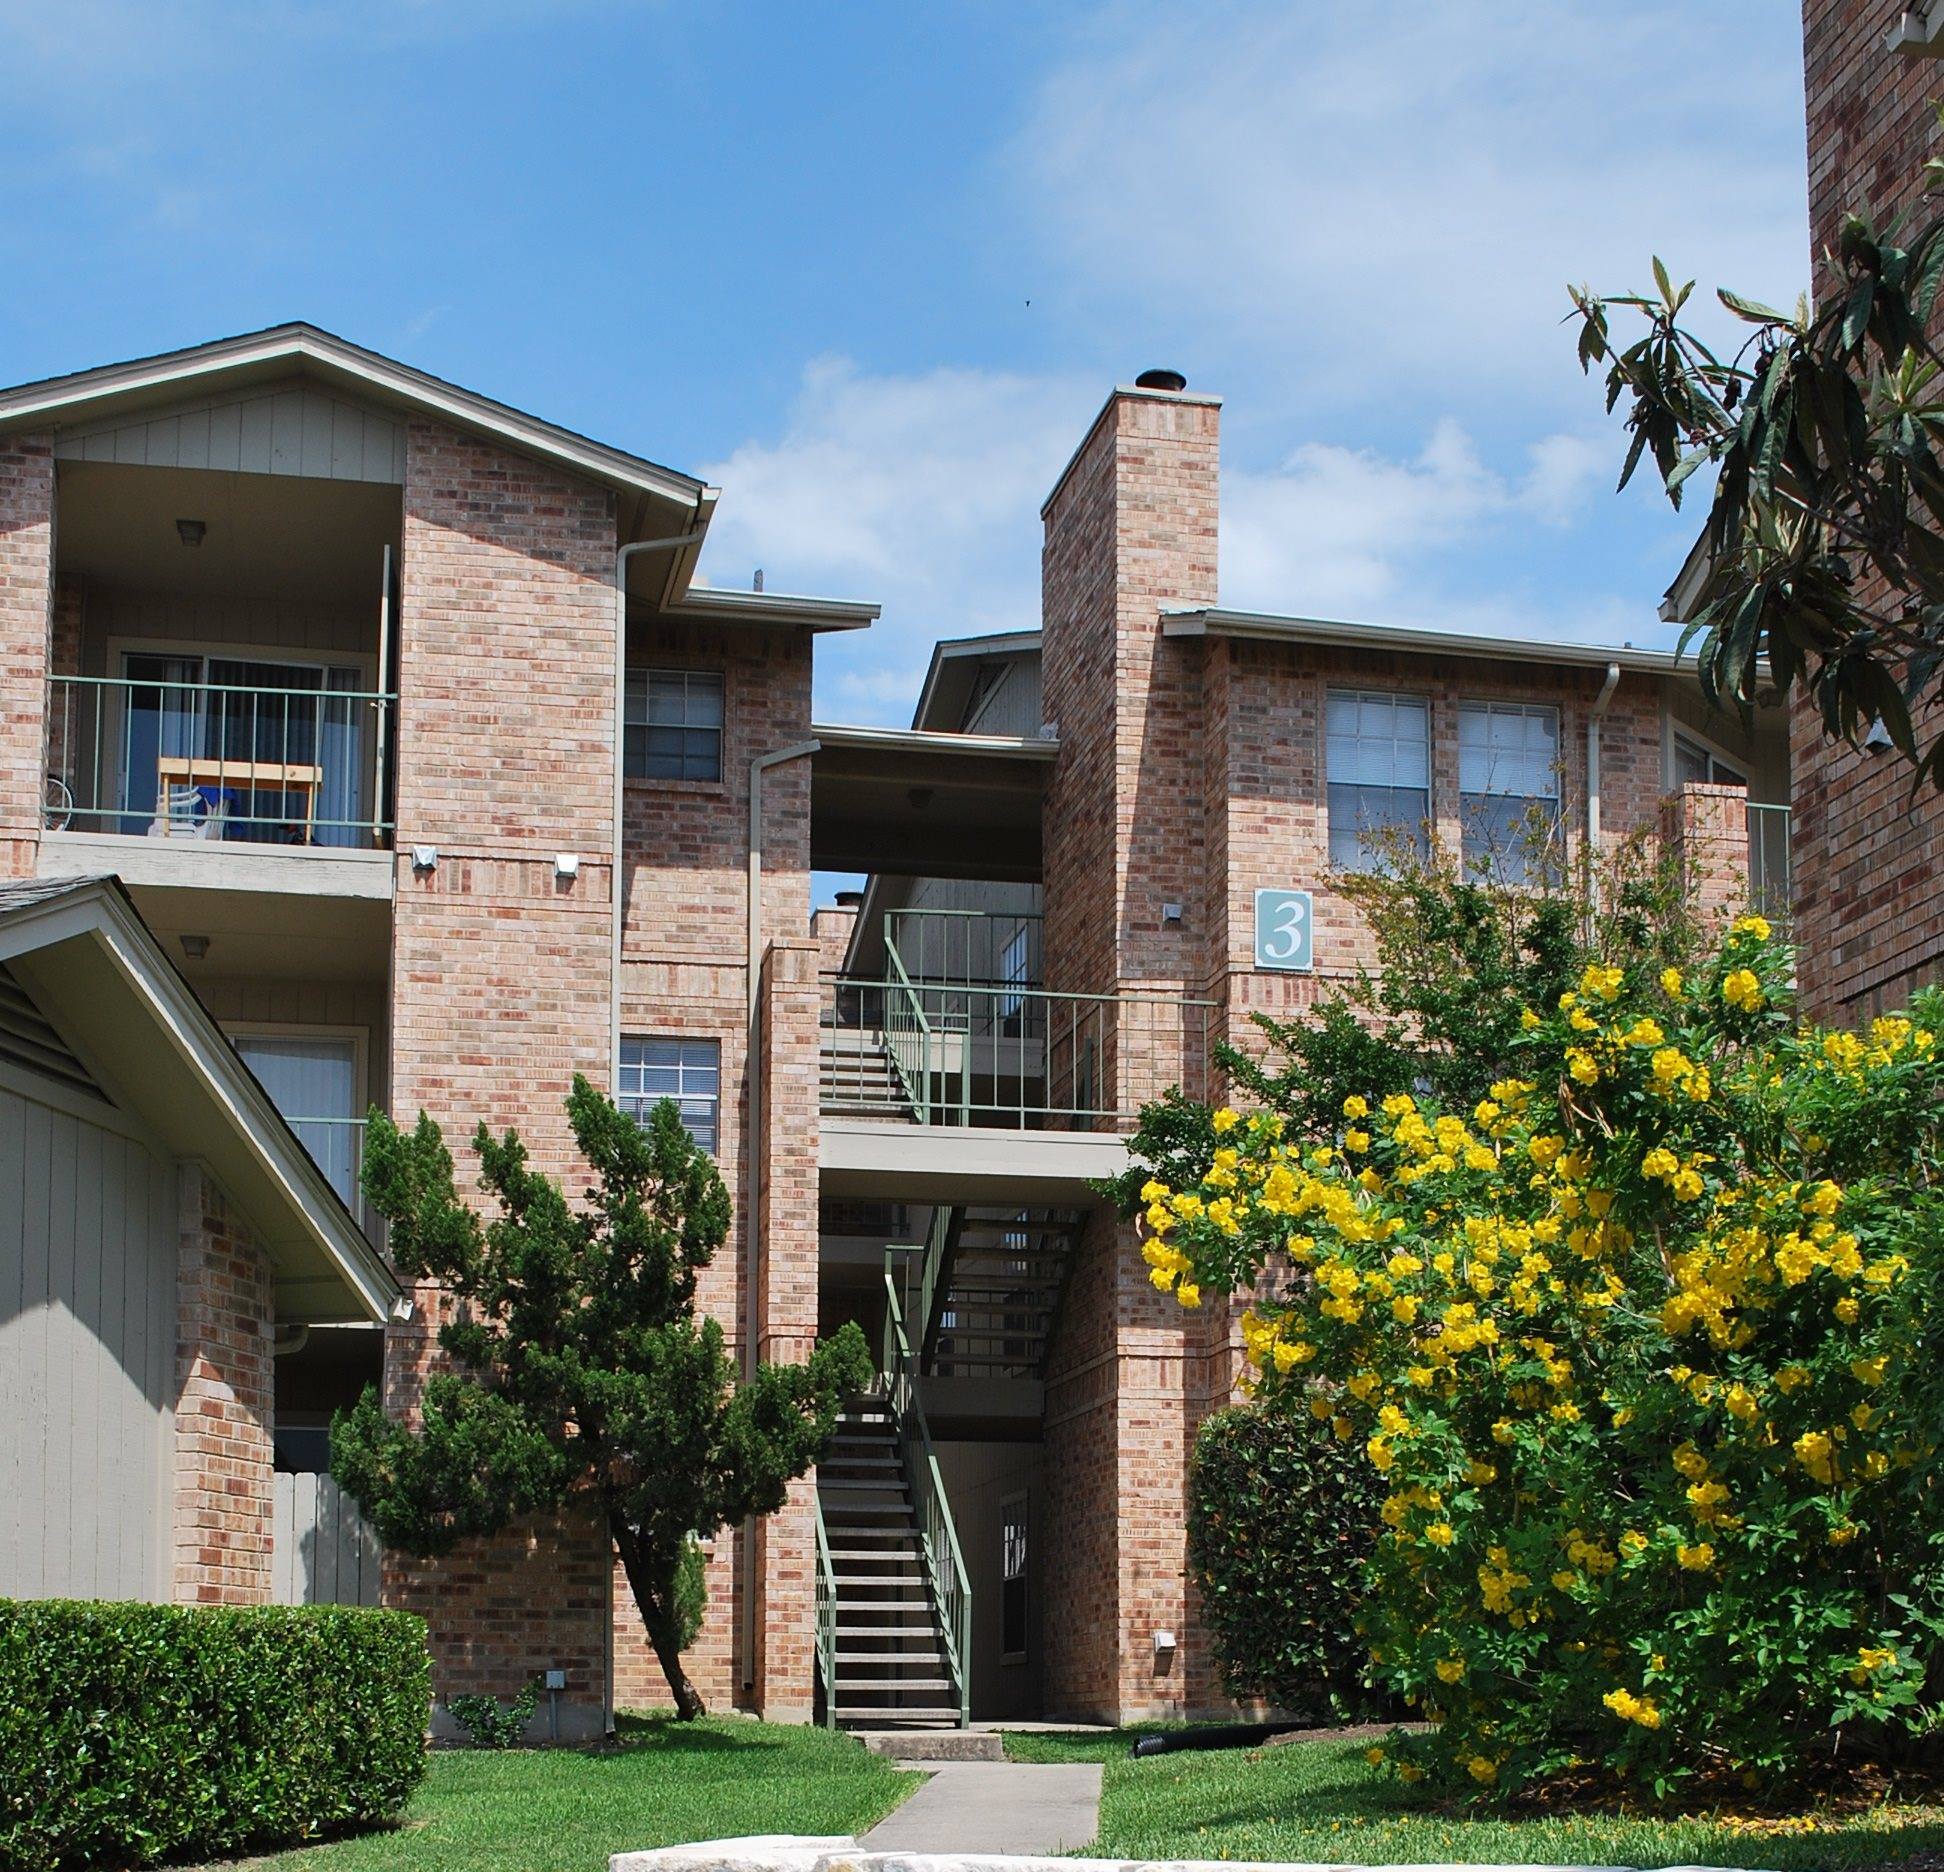 Photos And Video Of Tradewinds Apartments In San Antonio, TX